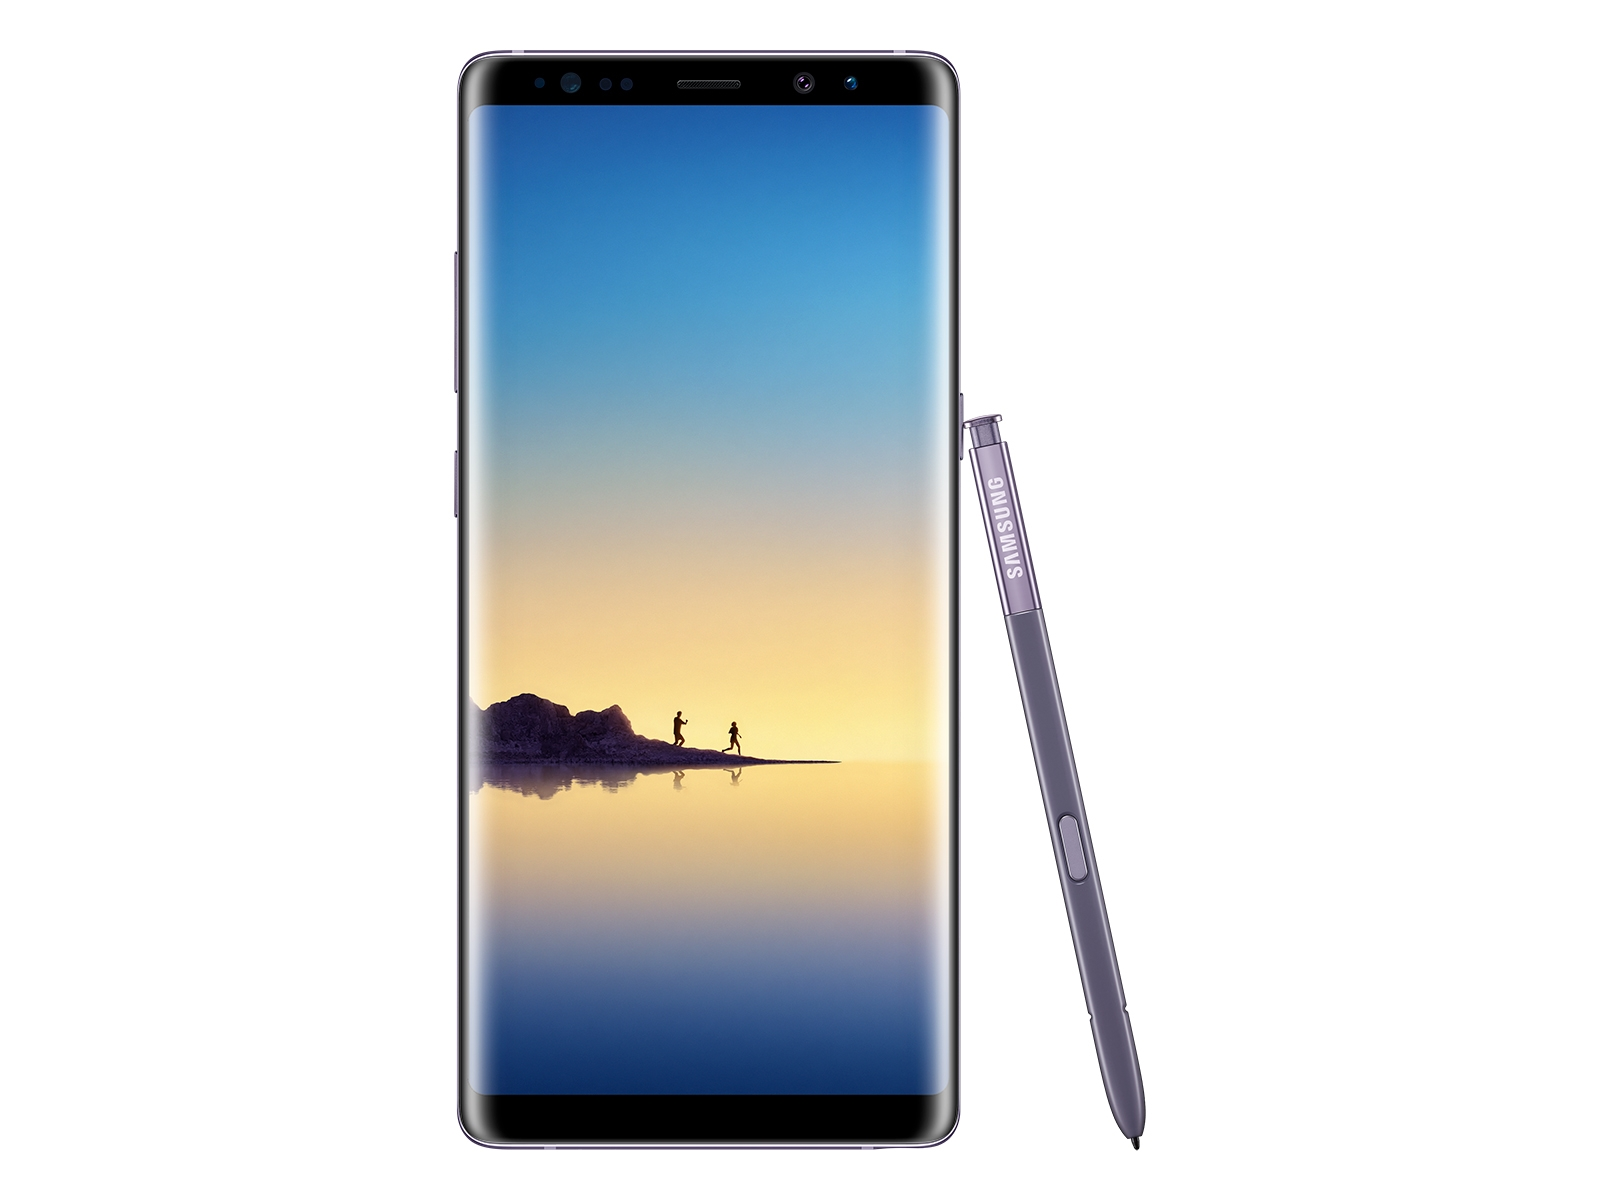 Turn GPS on your Samsung Galaxy Note8 Android 7.1 on or off